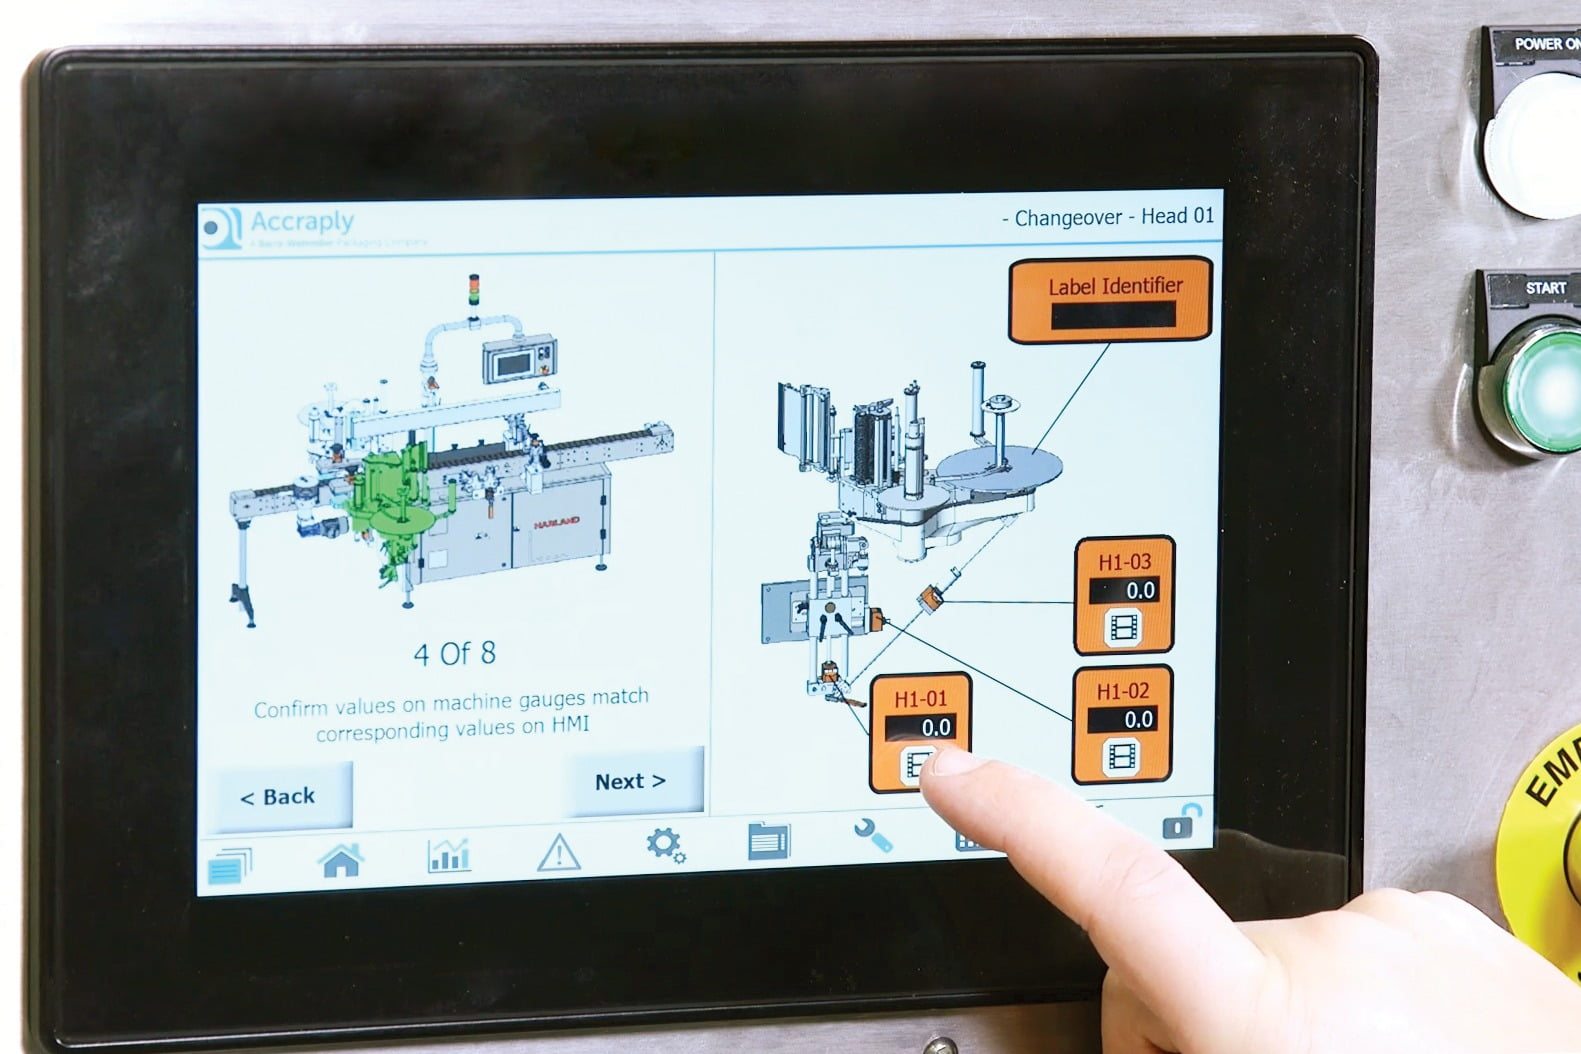 The Smartlink HMI aids operator setup and reduces downtime with video tutorials that advise the operator on routine maintenance tasks.